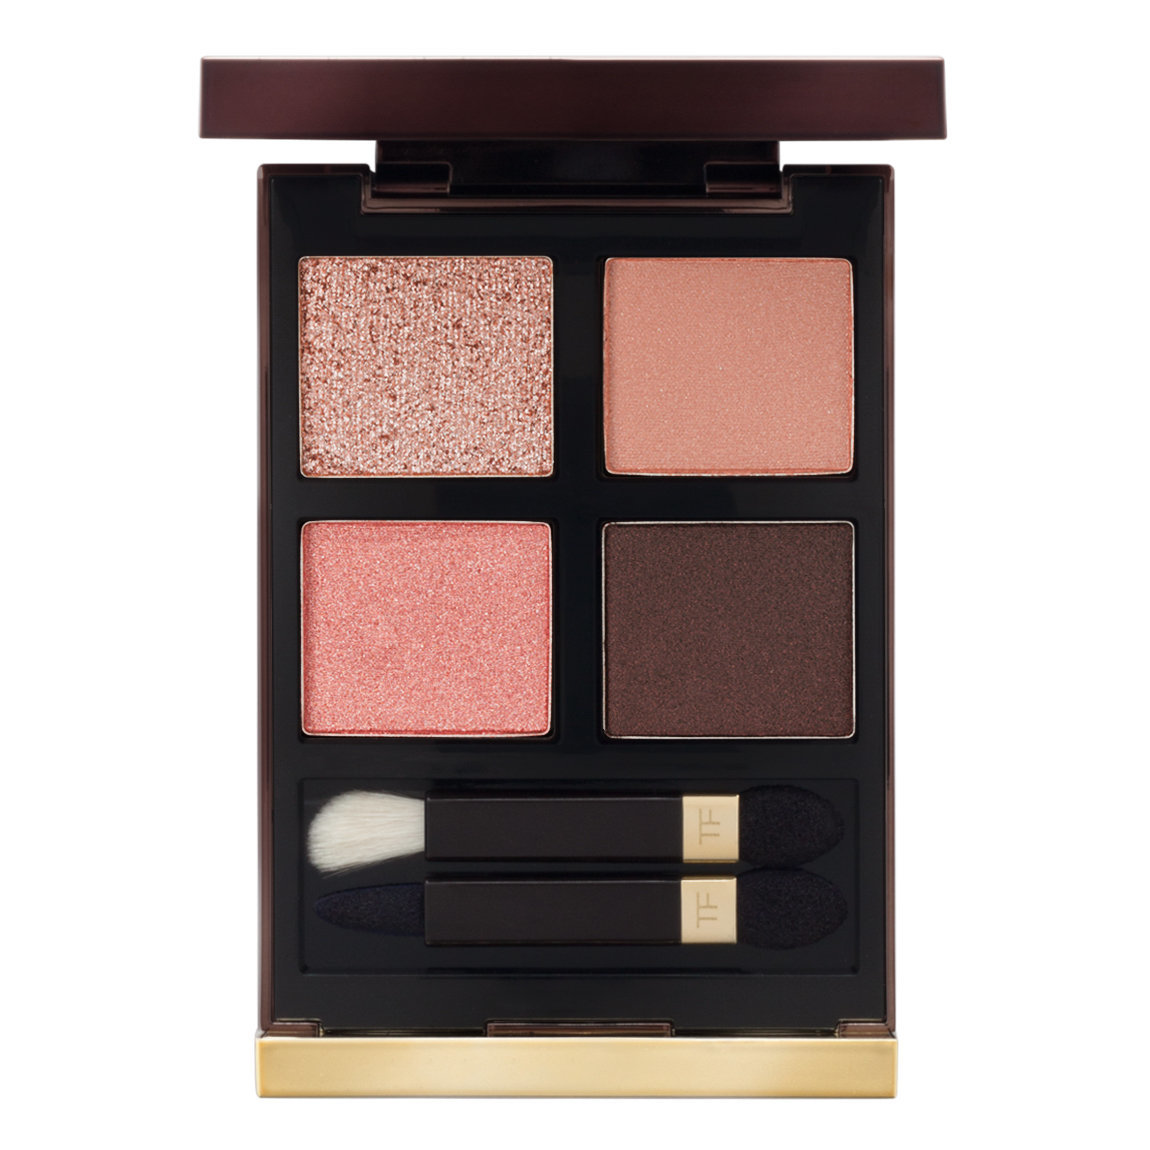 TOM FORD Eye Color Quad Disco Dust product swatch.